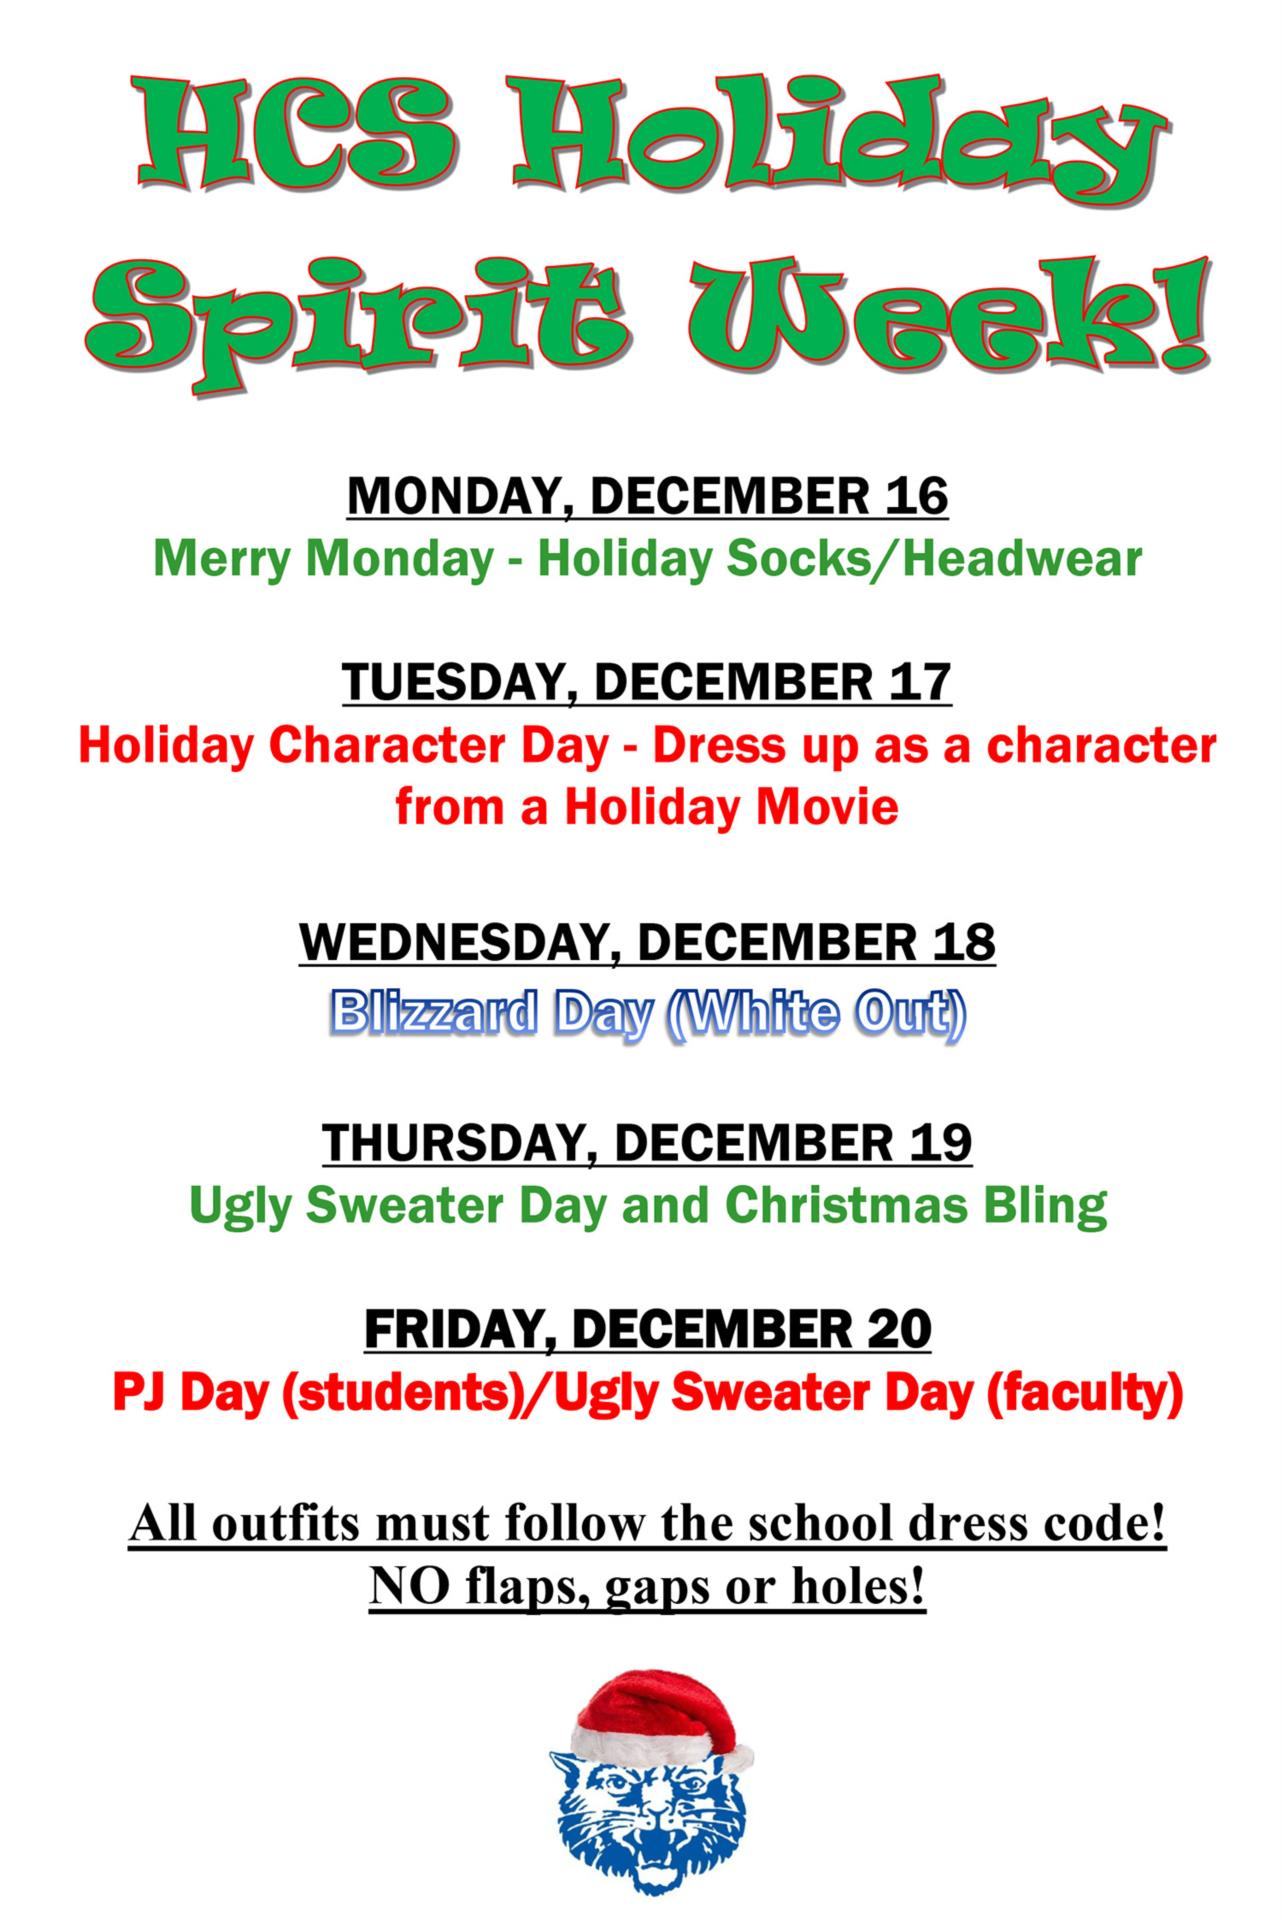 Hancock Holiday Spirit Week schedule 2019